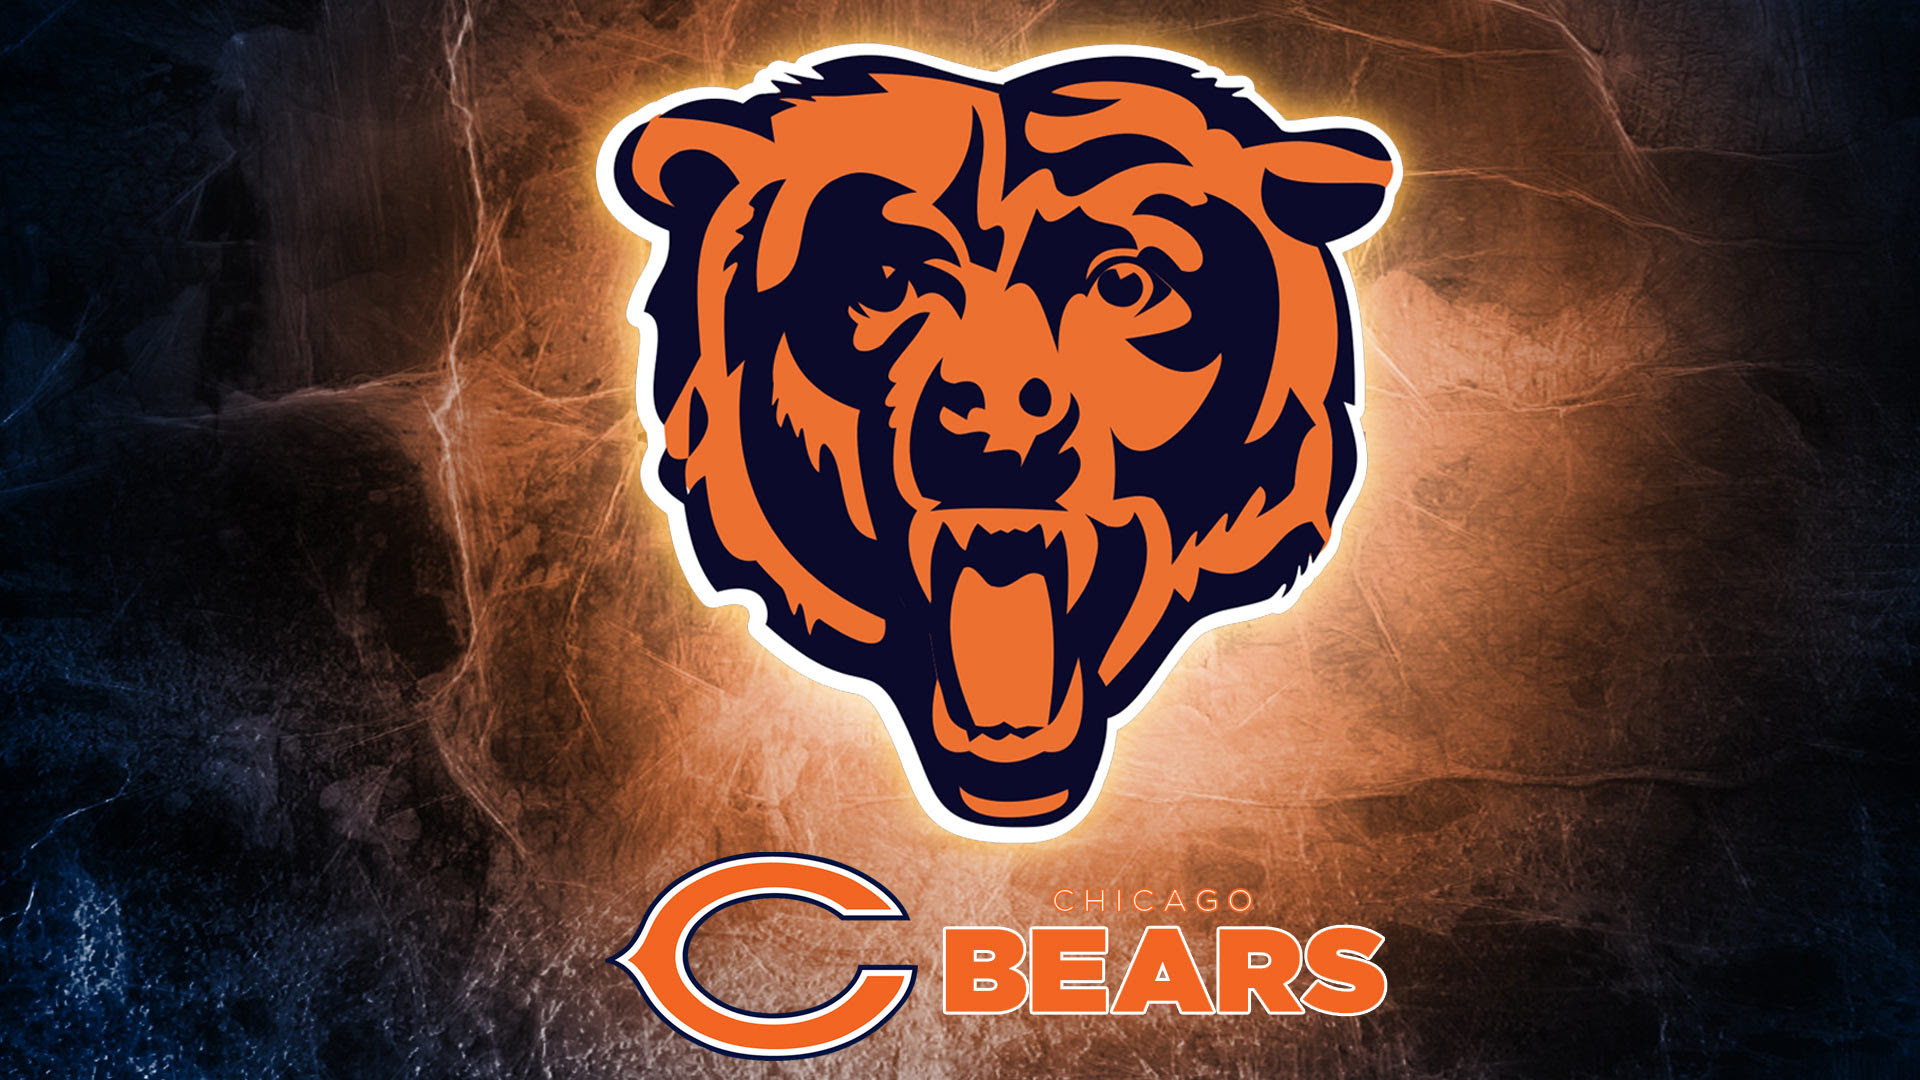 Chicago Bears 2018 Wallpapers 57+ images